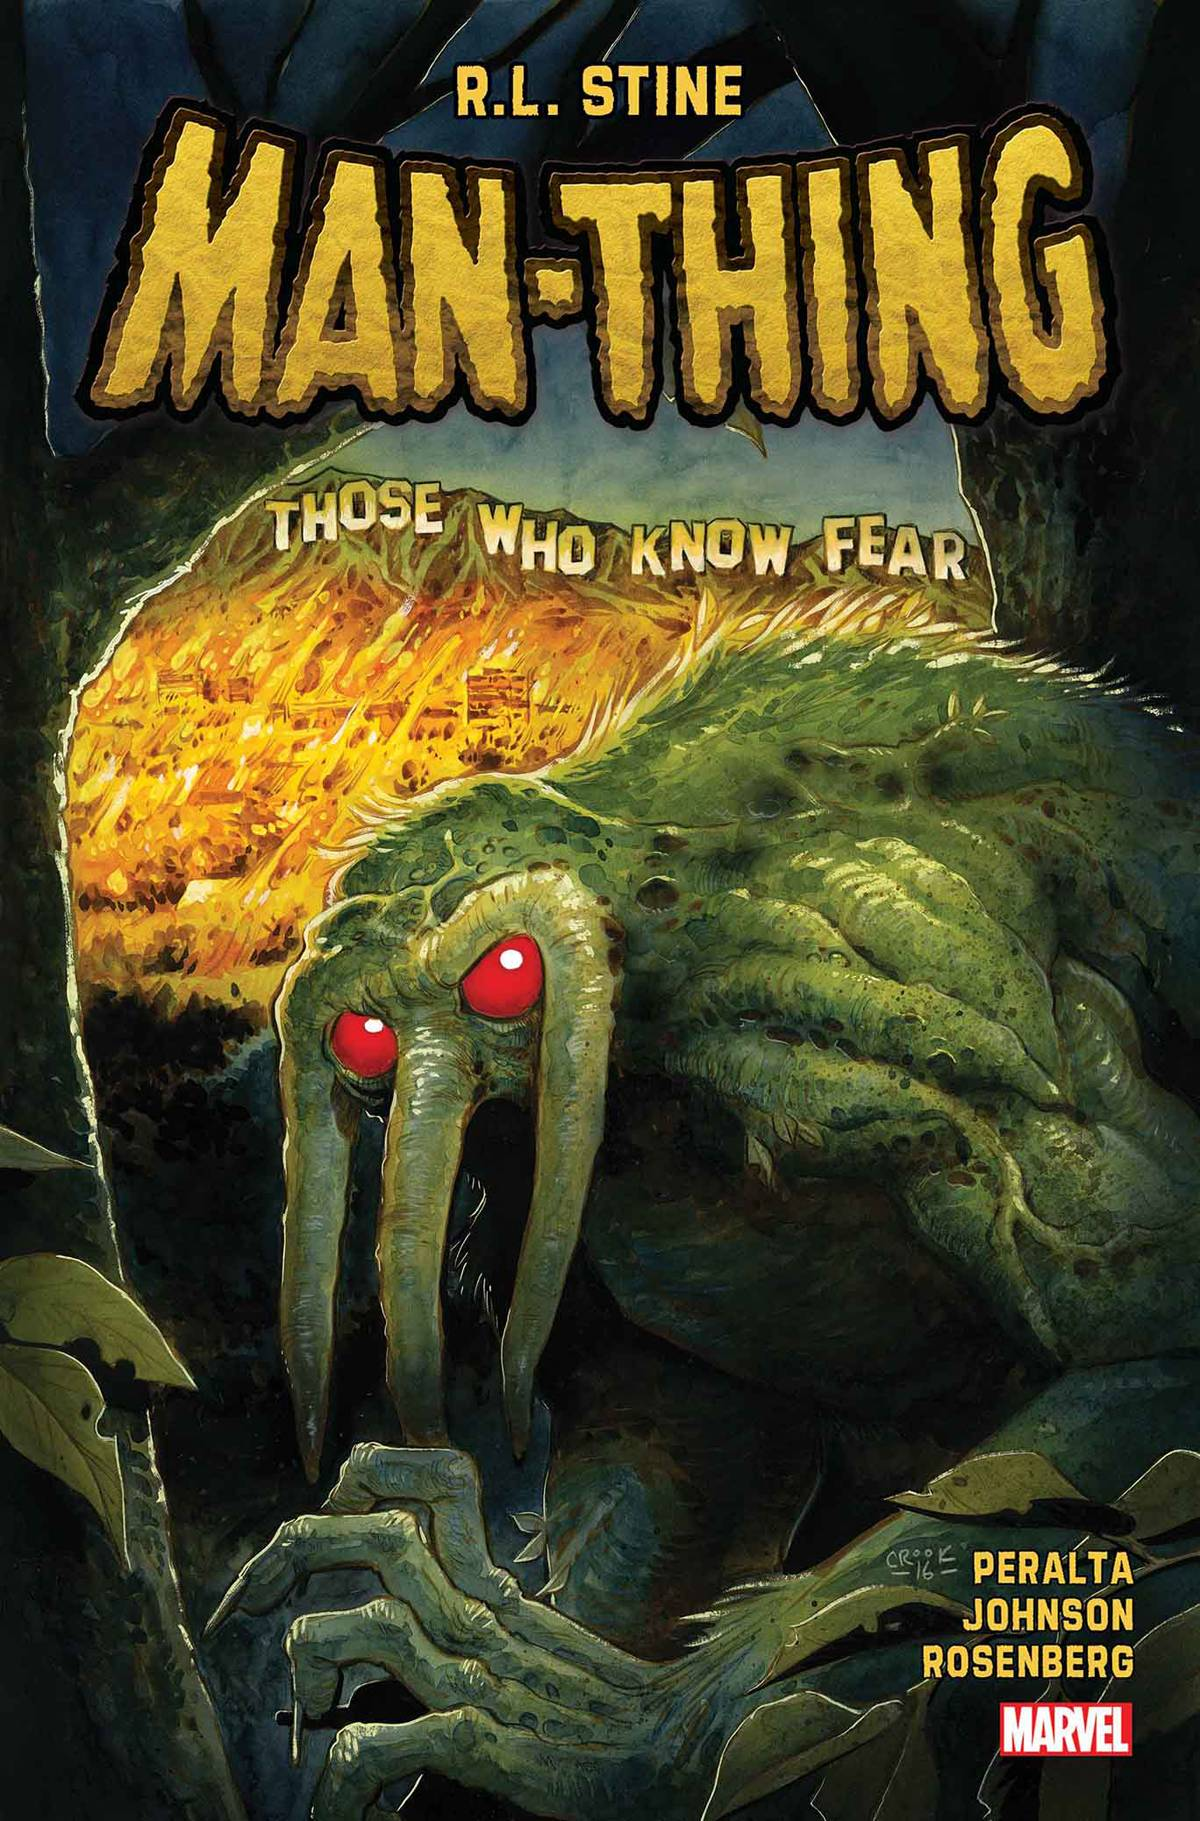 Man-Thing (5-issue mini-series)